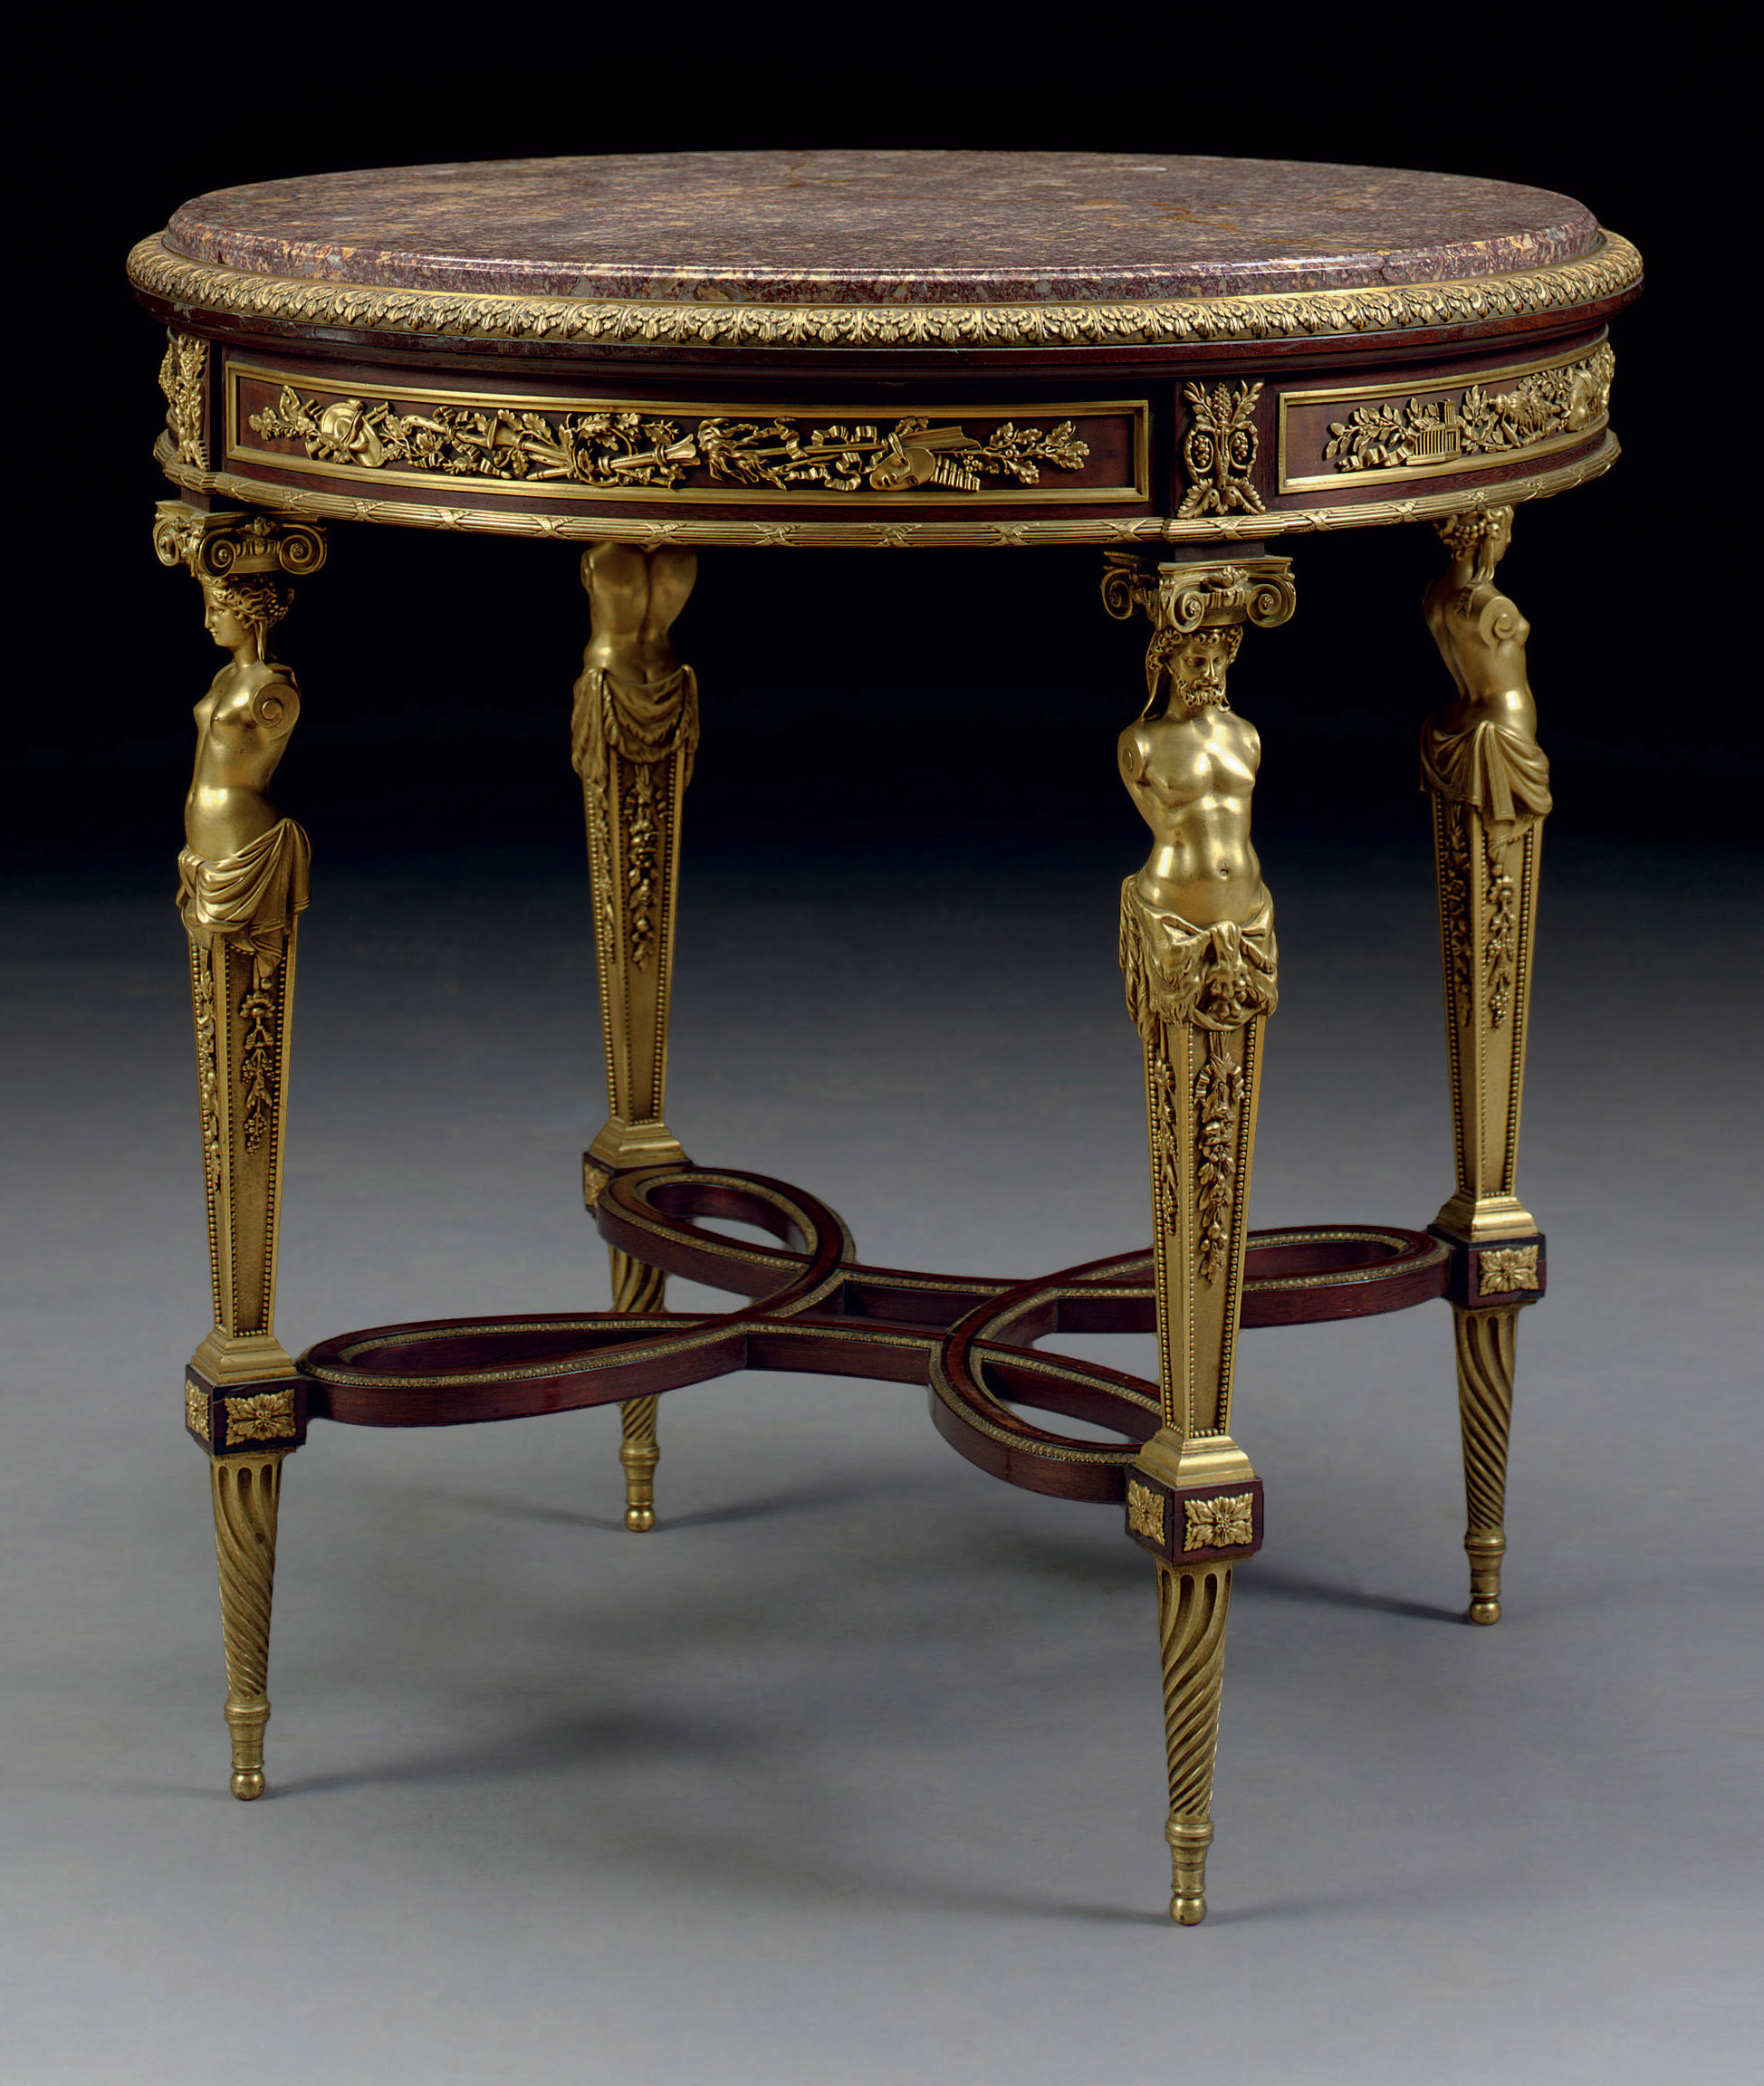 A FRENCH ORMOLU-MOUNTED MAHOGANY CENTER TABLE